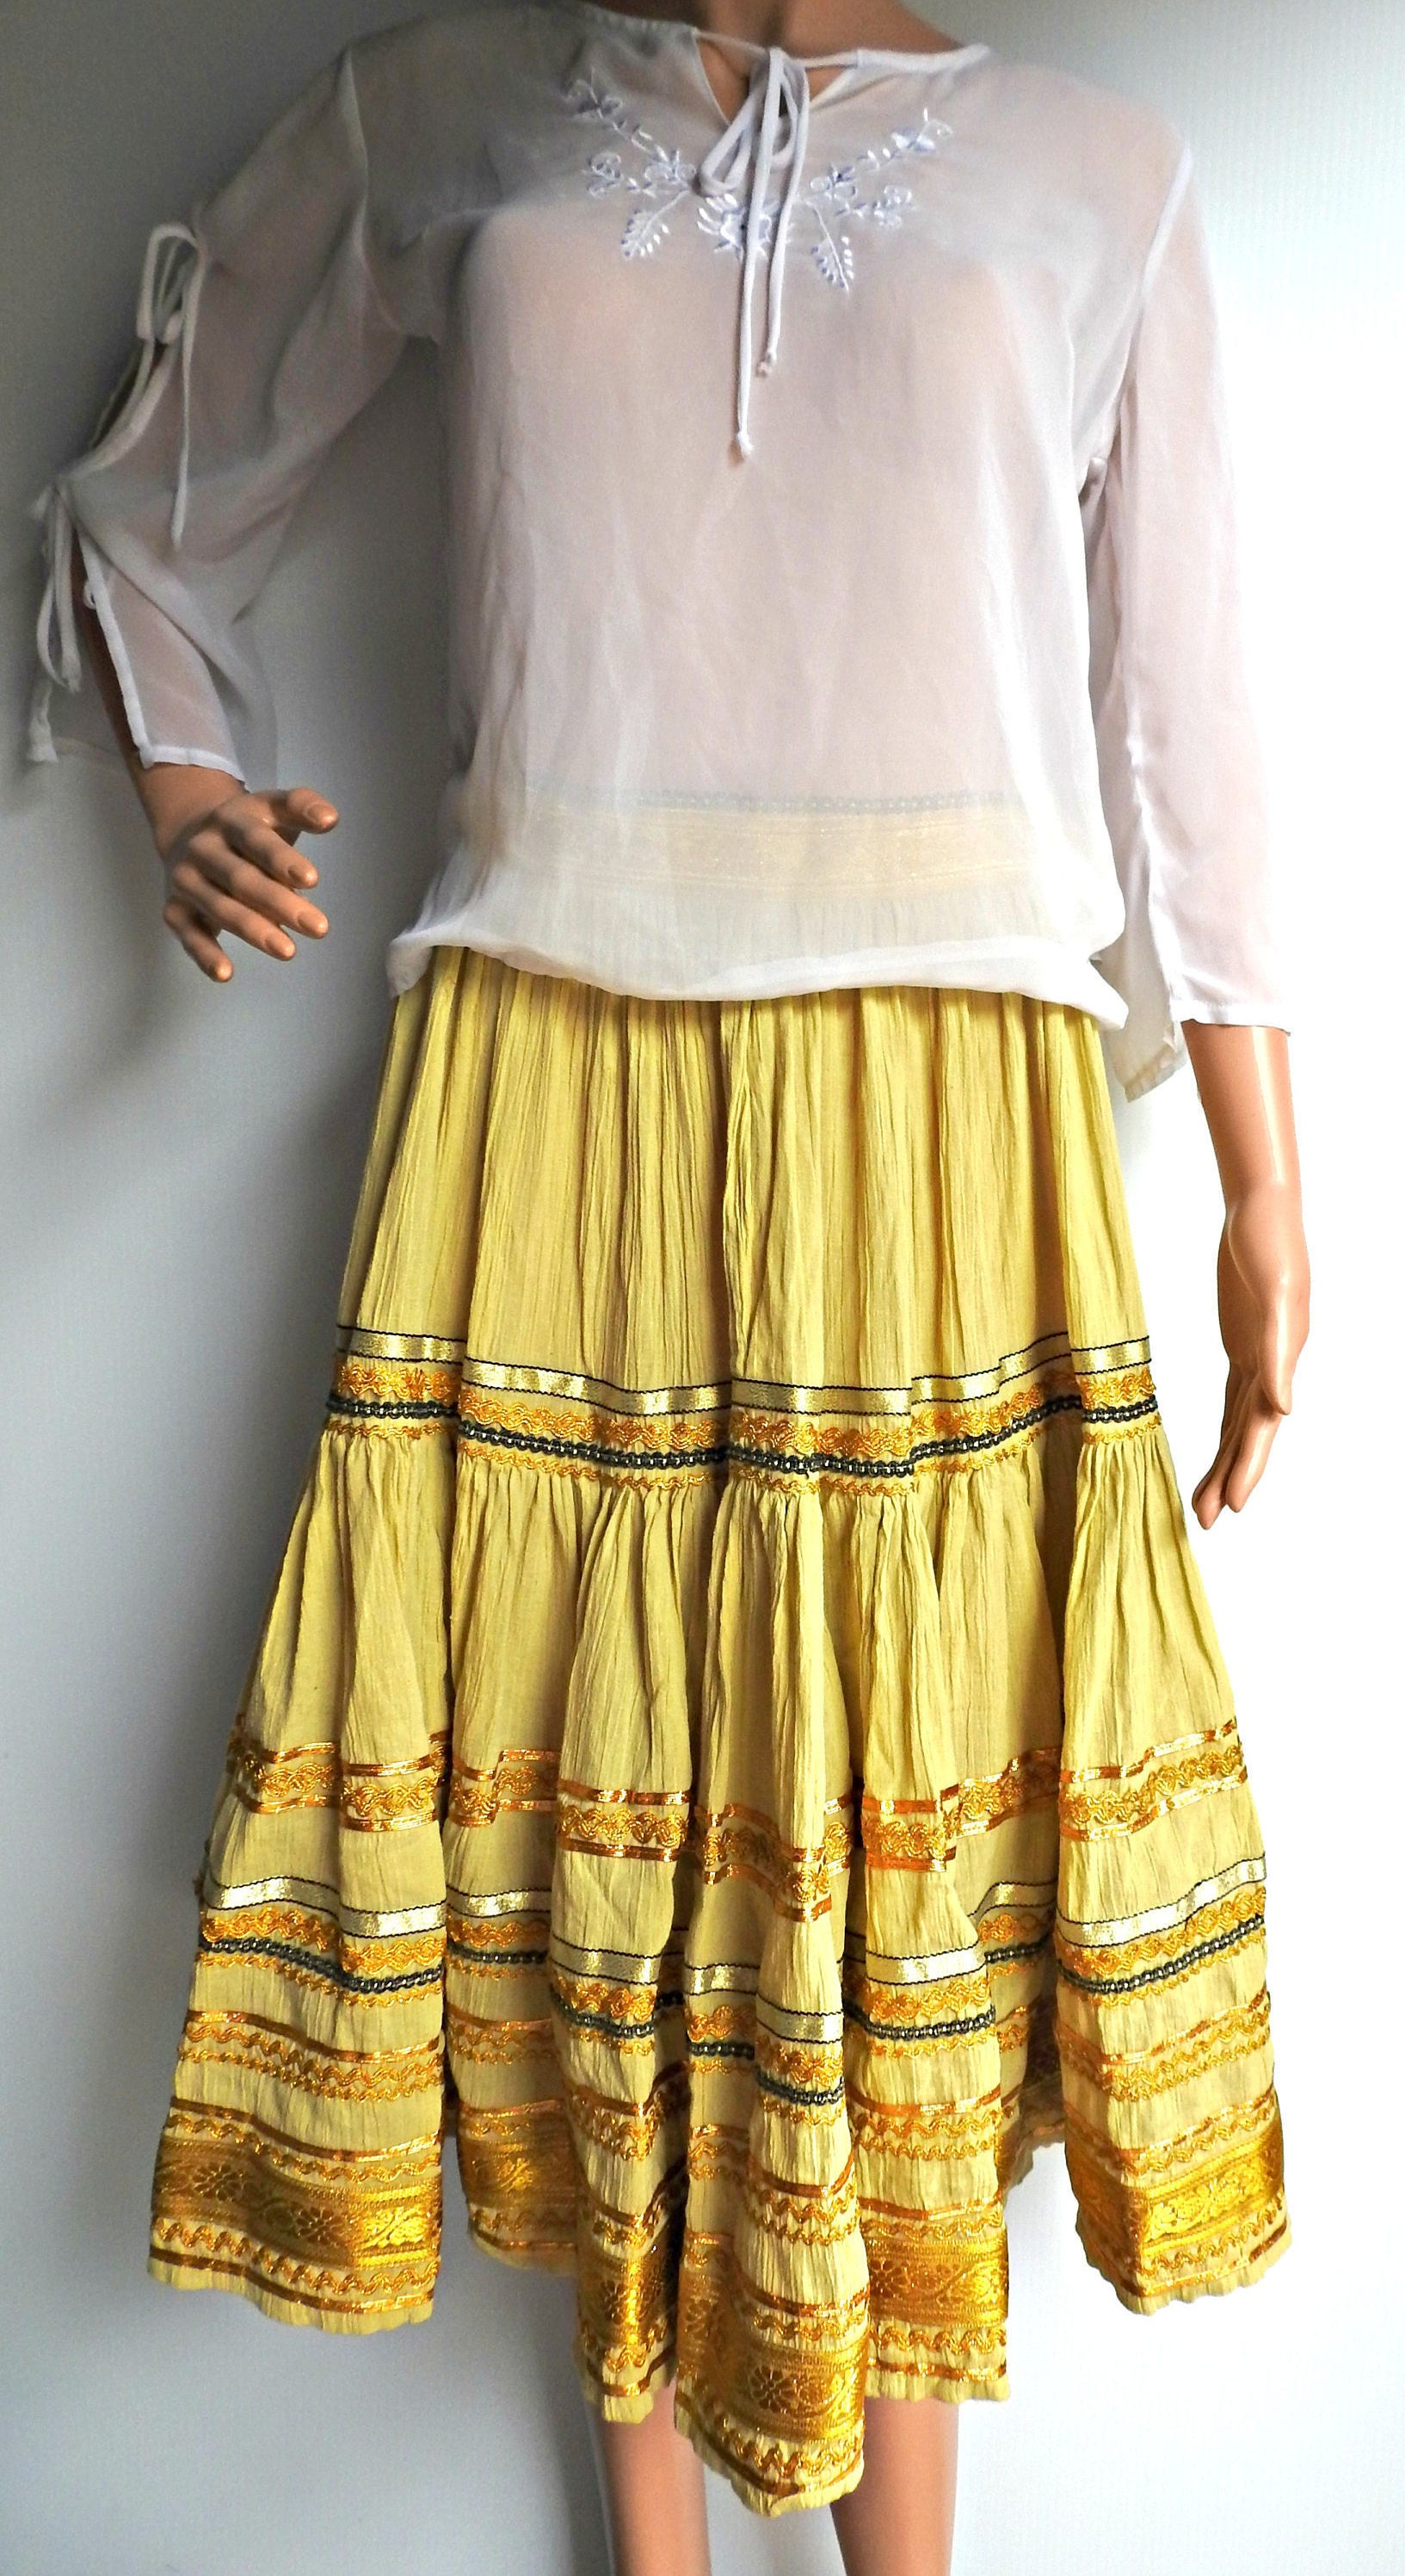 ac1e7be846992 Esmeralda style skirts, Ladies Chiffon Skirts Long, Maxi Skirts Summer ...